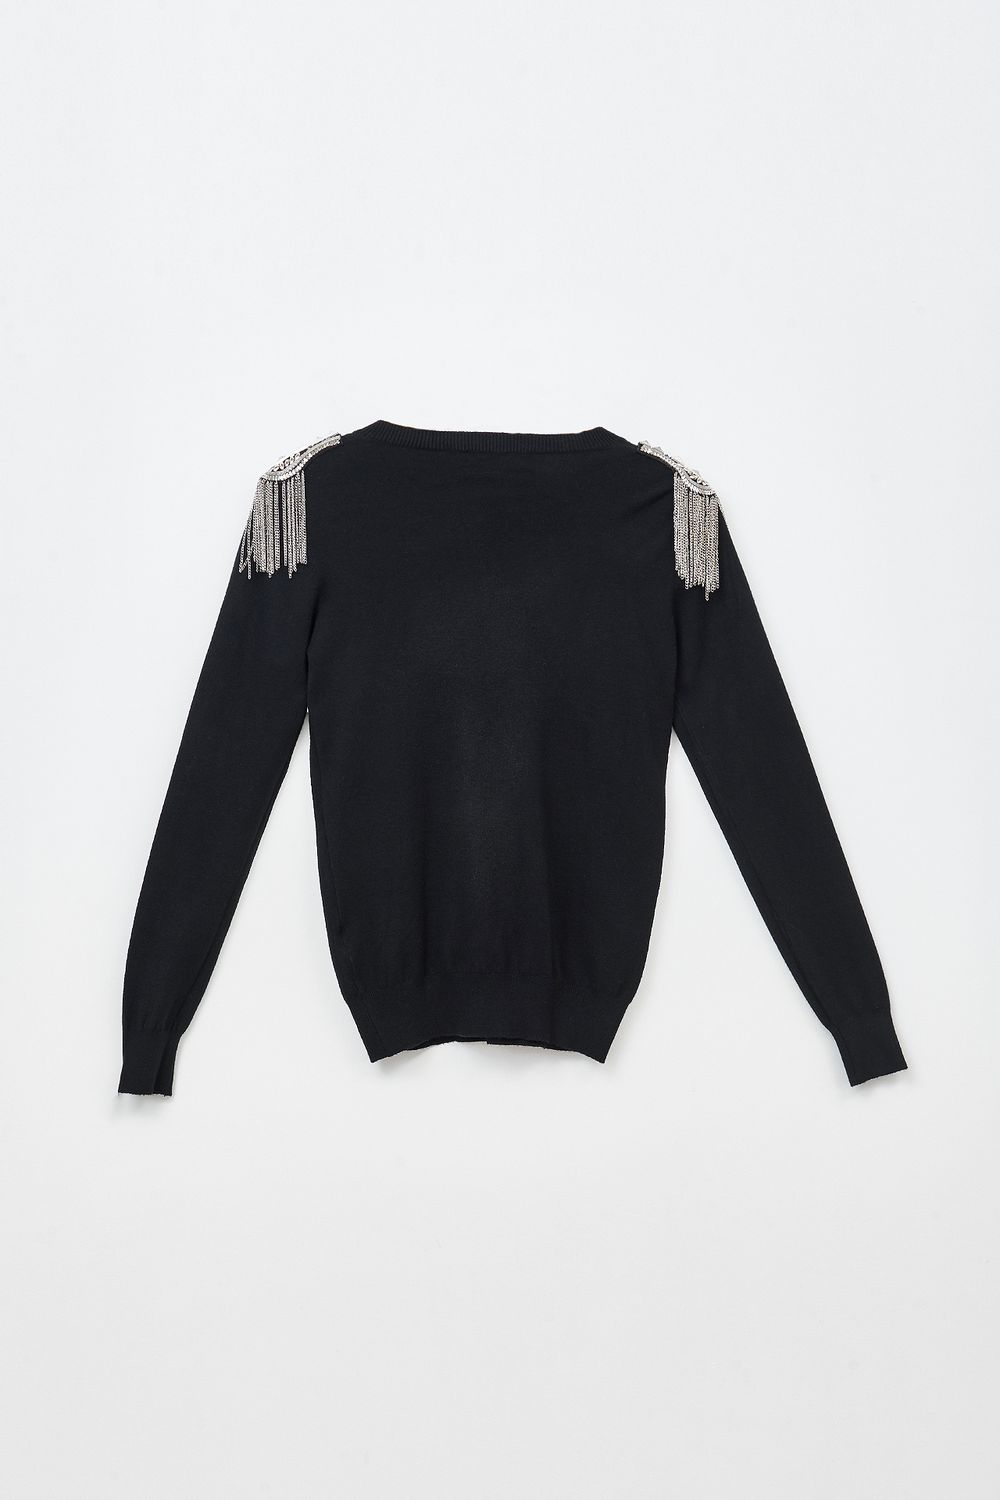 Sweater-Celaya-Negro-40